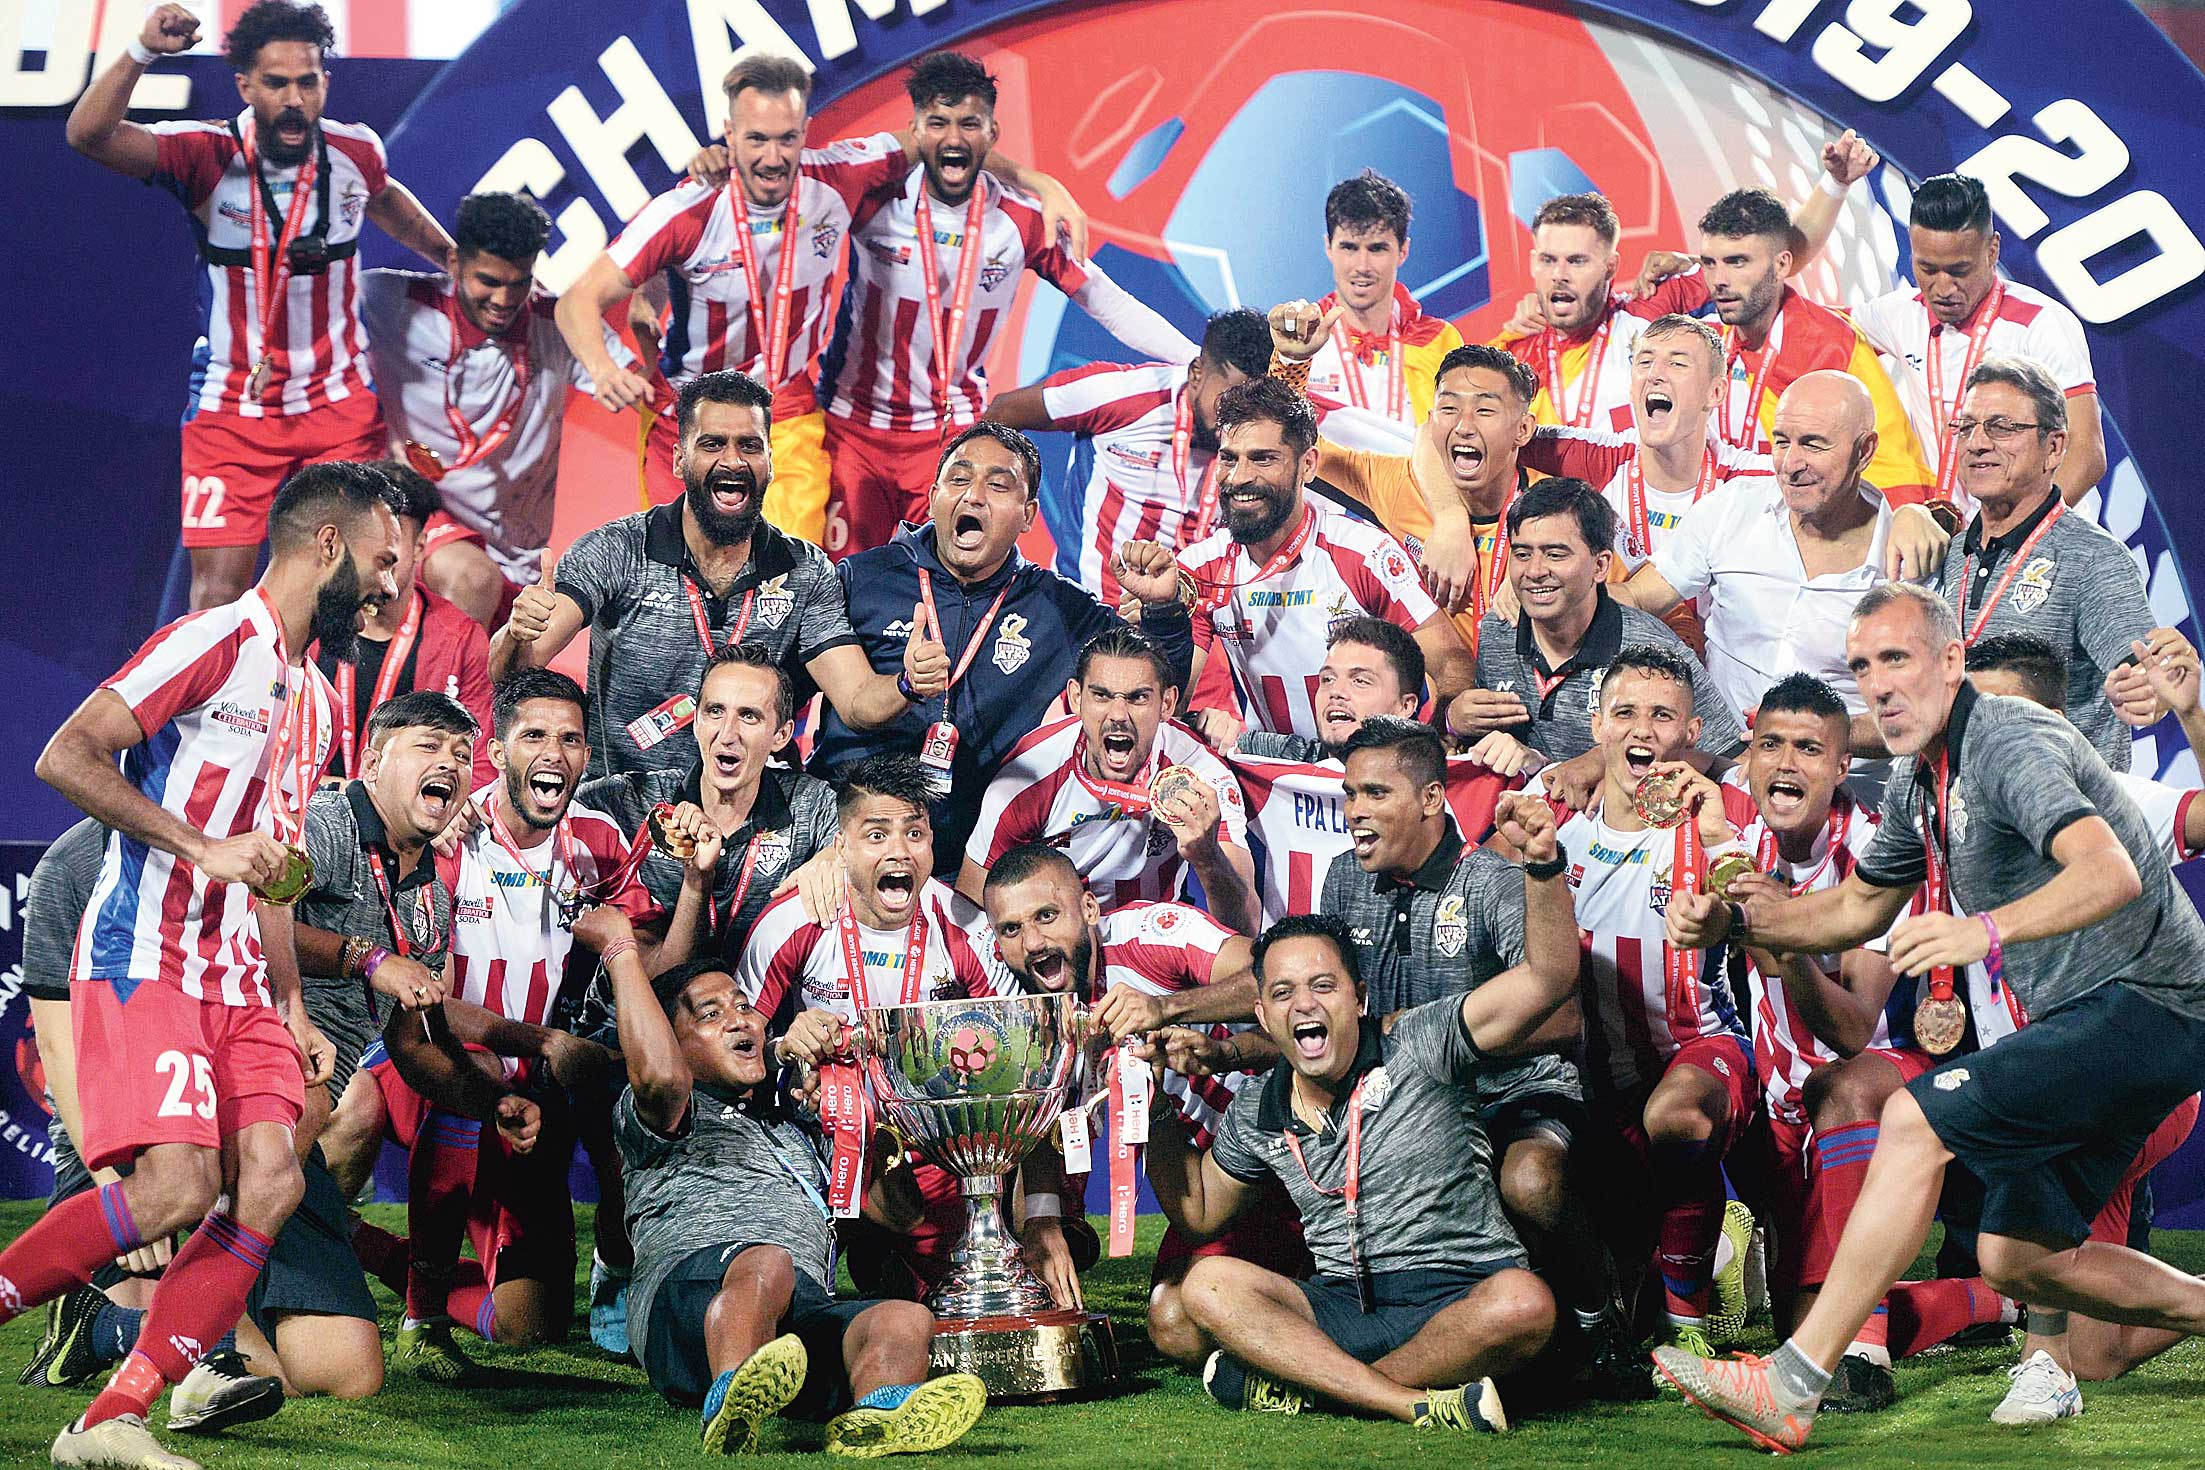 ATK players and support staff celebrate after winning the ISL title in Margao on Saturday.